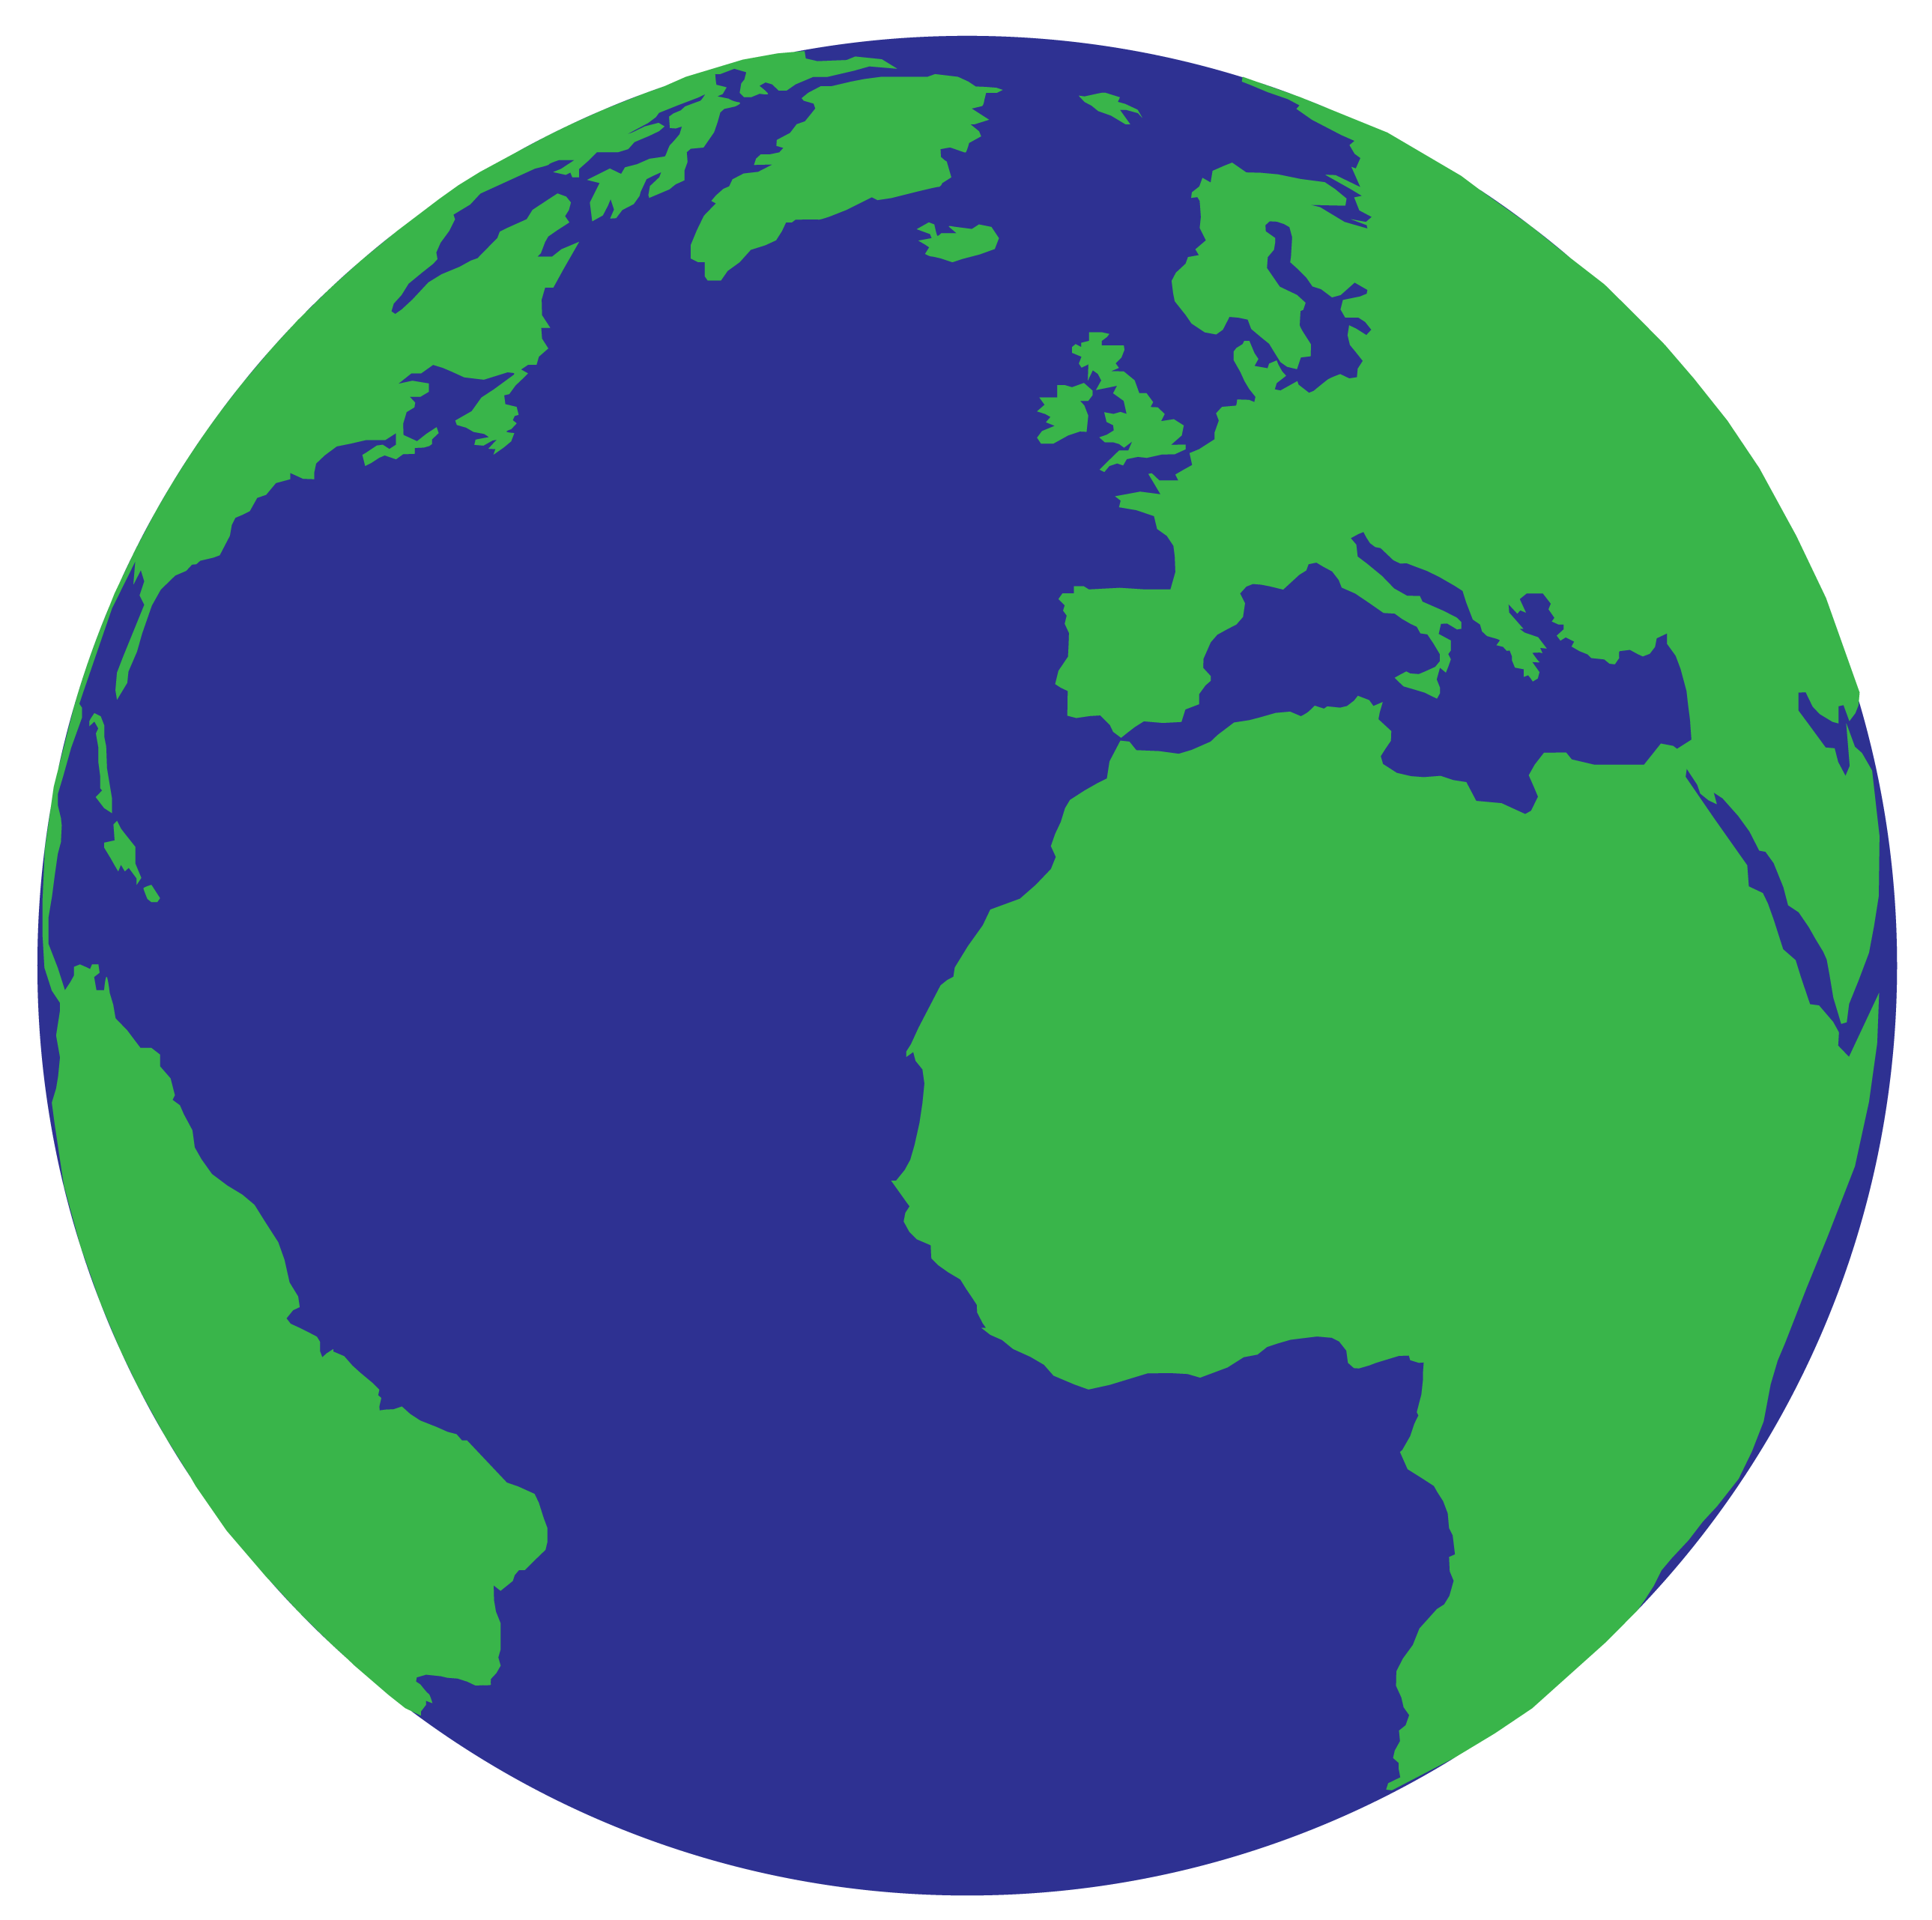 Planet Earth Clipart - clipartall